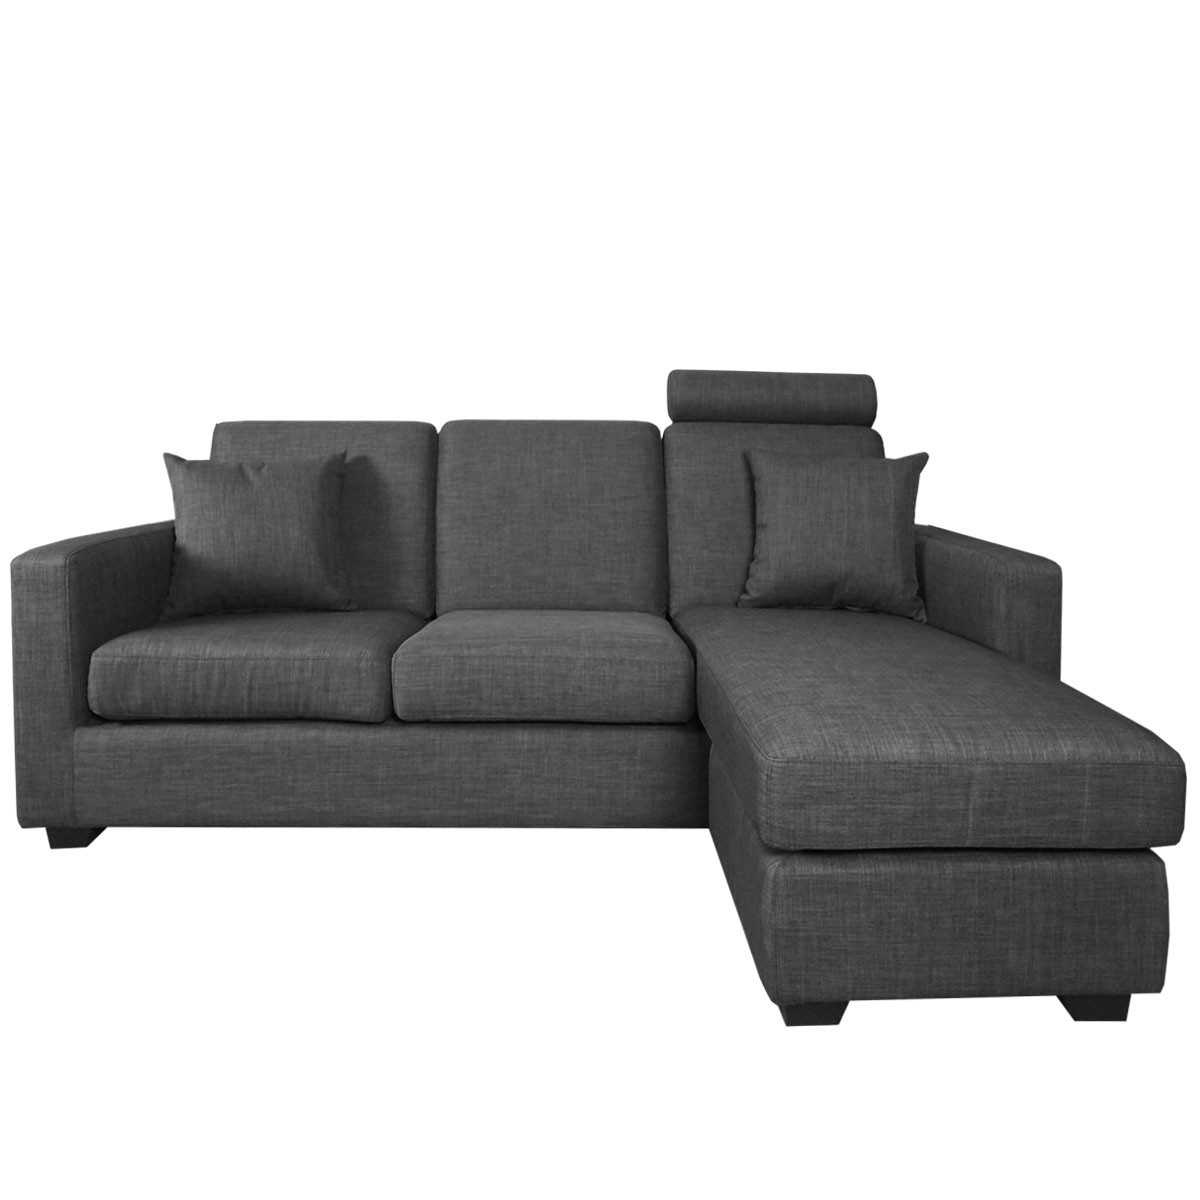 Richmond Sofa Grey   Furniture & Home Décor   Fortytwo Pertaining To Richmond Sofas (View 12 of 15)